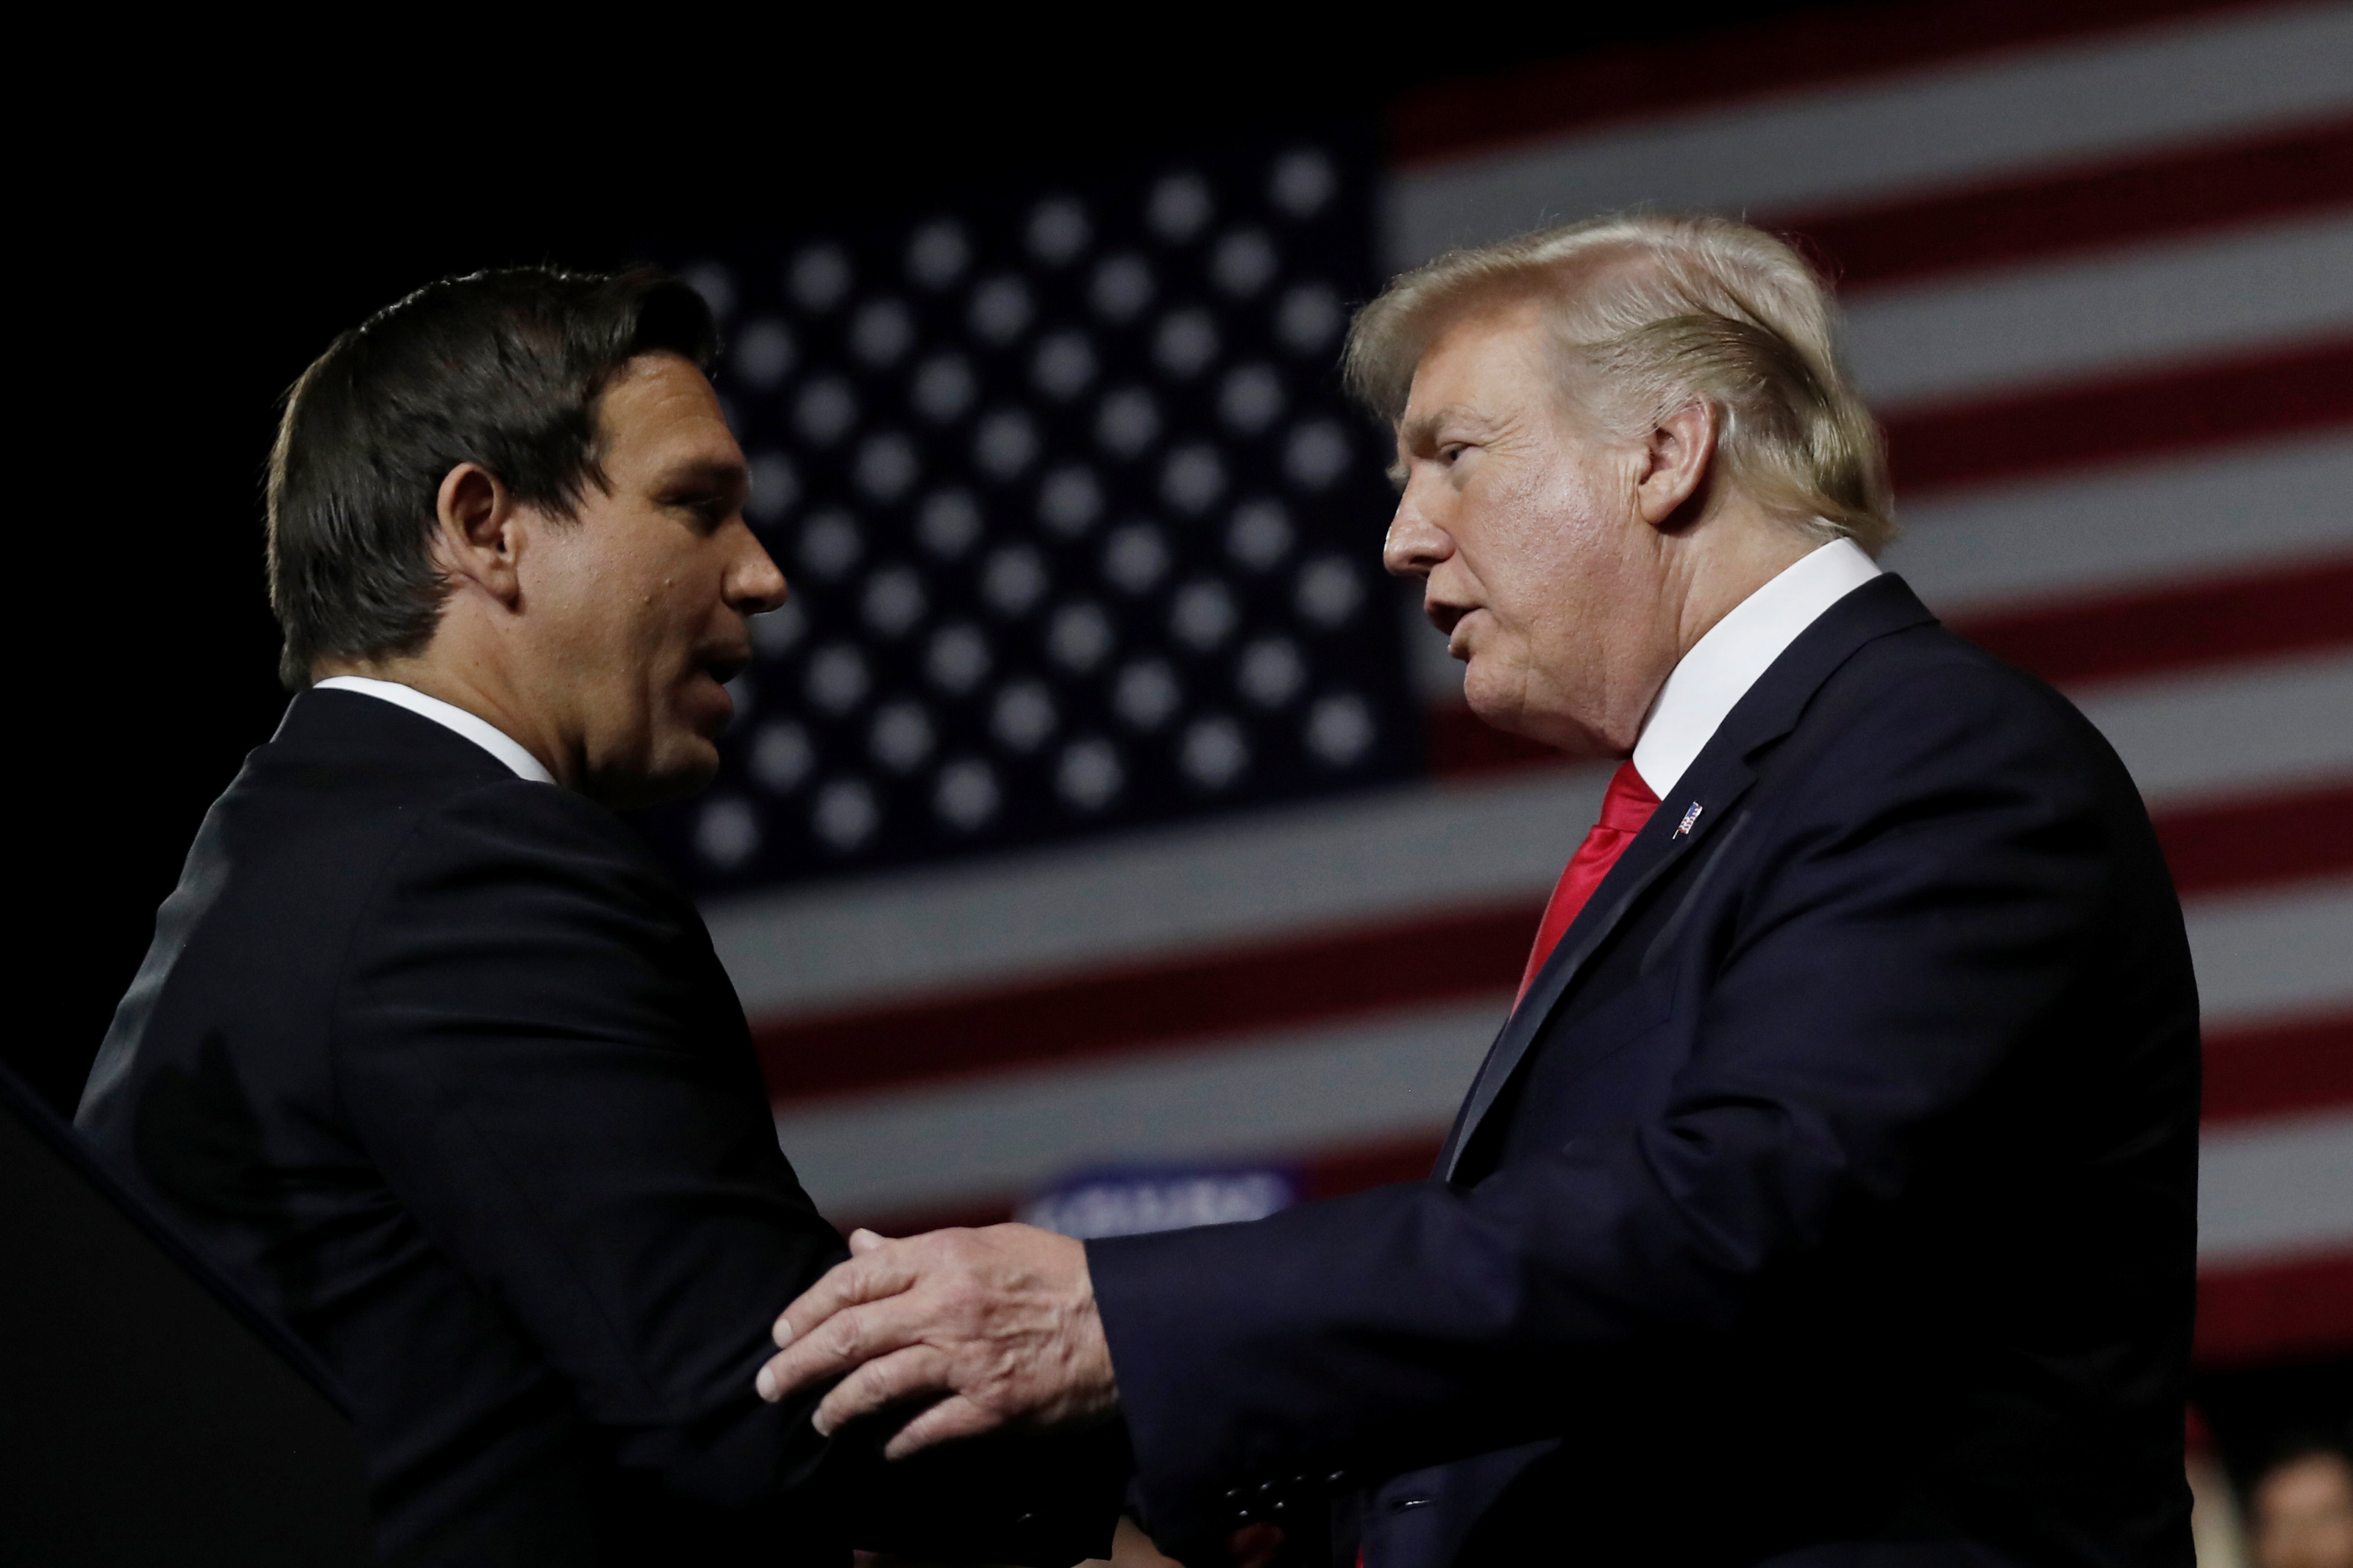 U.S. President Donald Trump talks with Republican Florida governor candidate Ron DeSantis during a Make America Great Again Rally at the Florida State Fairgrounds in Tampa, Florida, U.S., July 31, 2018. REUTERS/Carlos Barria